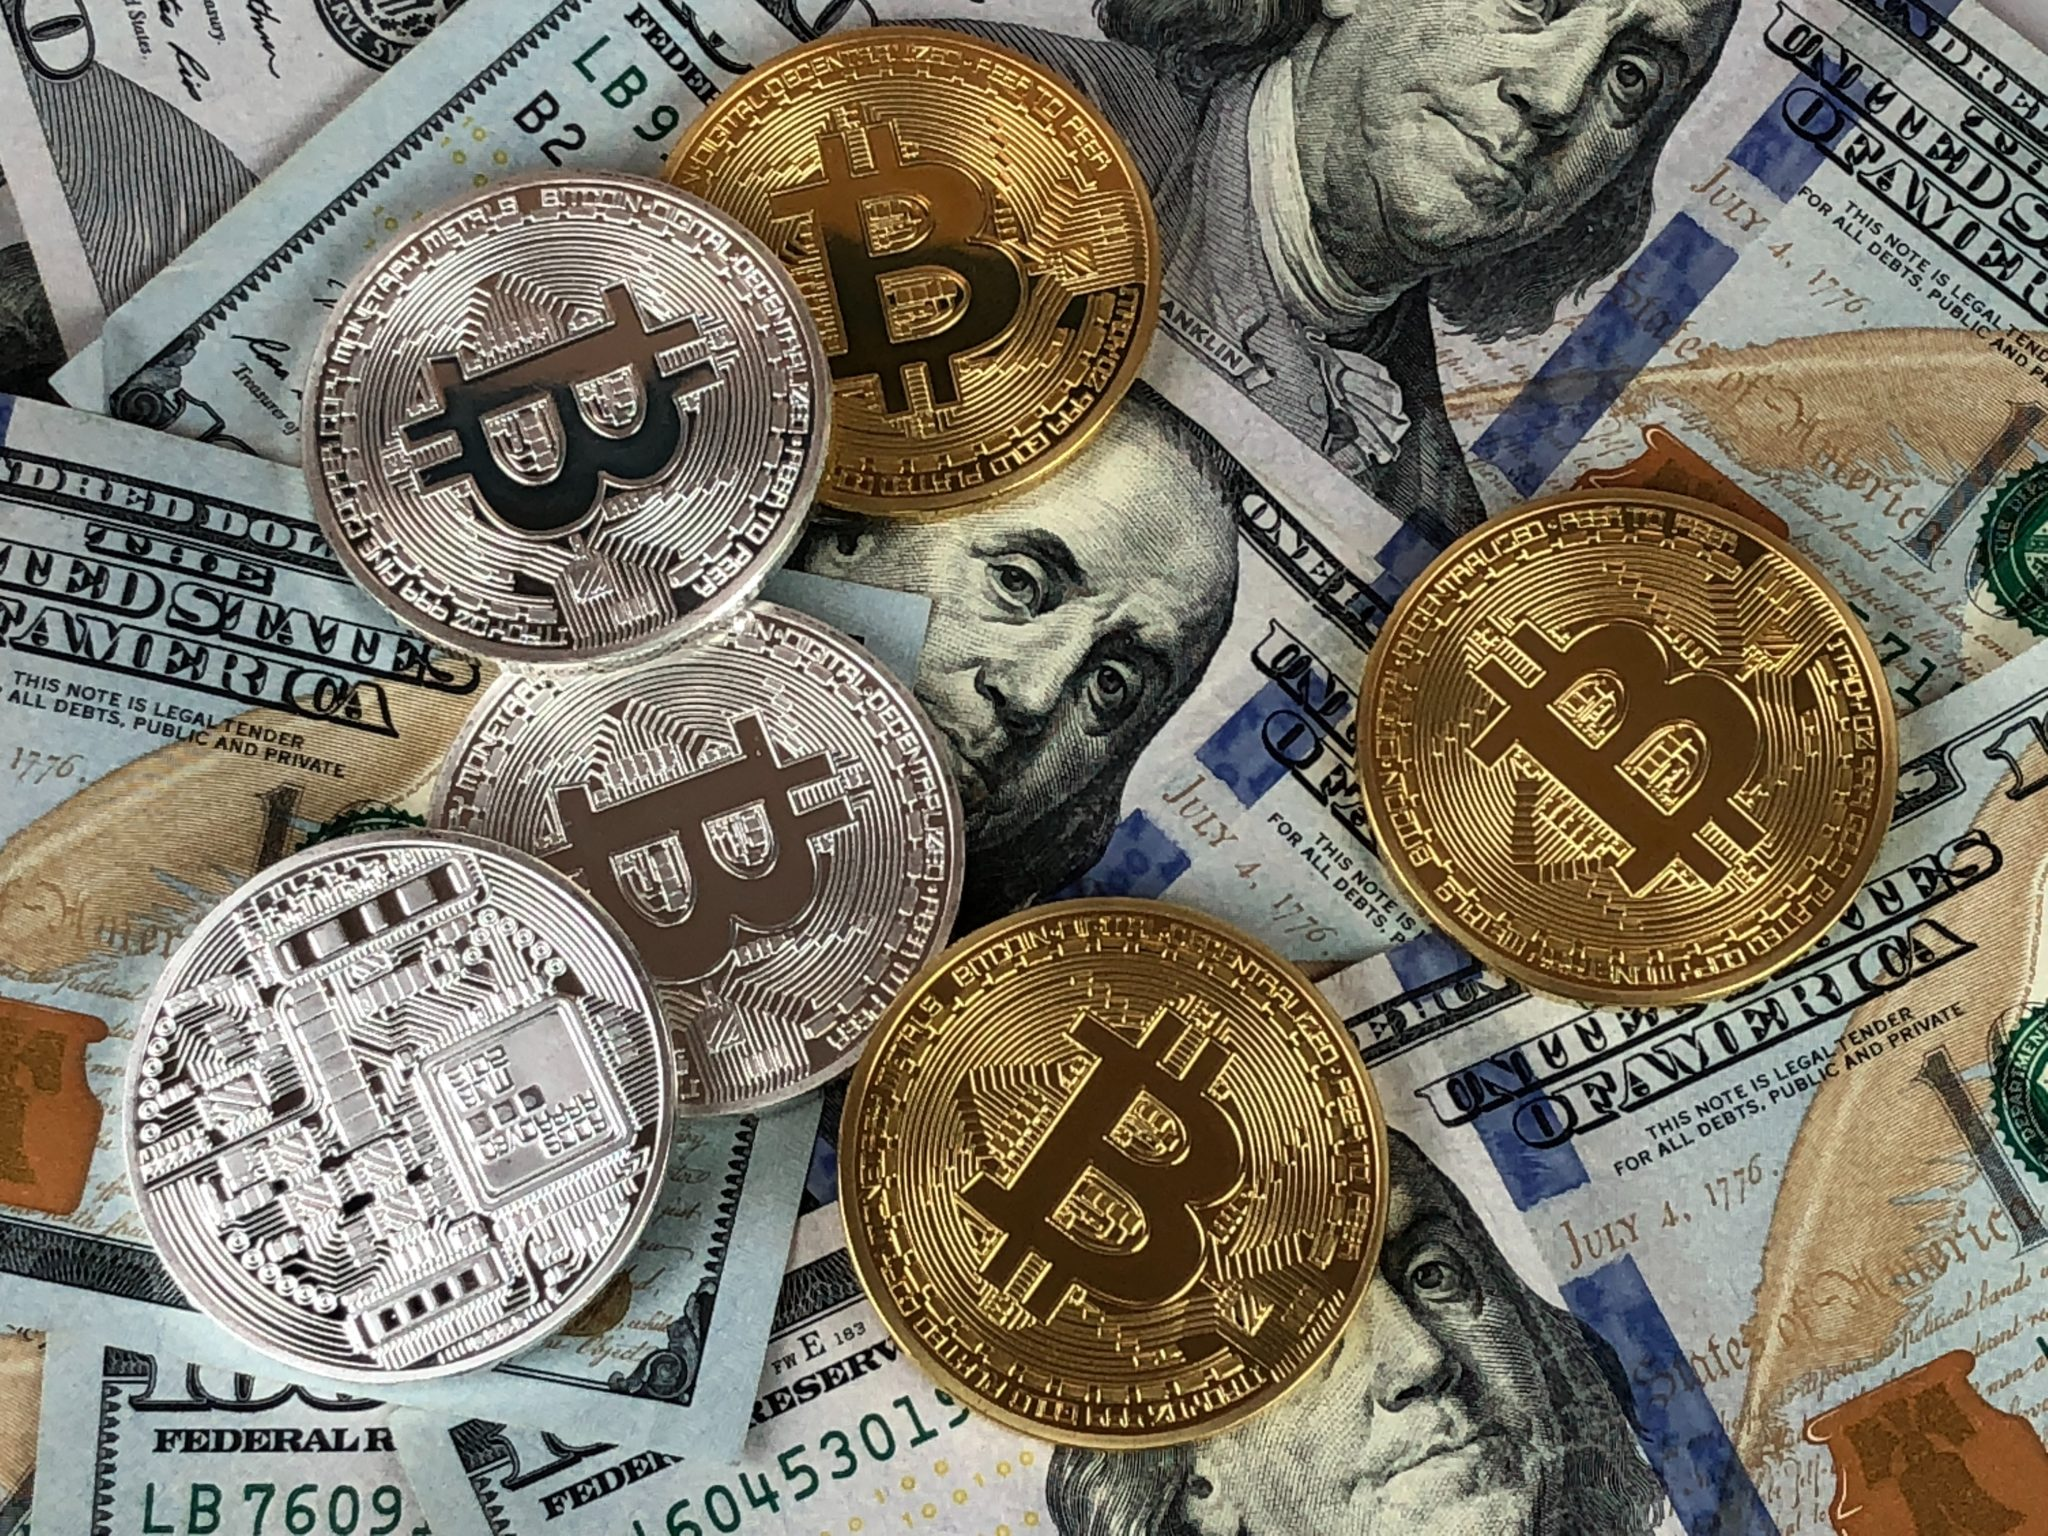 A picture of paper currency lying behind a handful of gold and silver coins with cryptocurrency symbols like Bitcoin. Cryptocurrency is a growing method for storing digital assets, consumer purchases, and long-term investment.